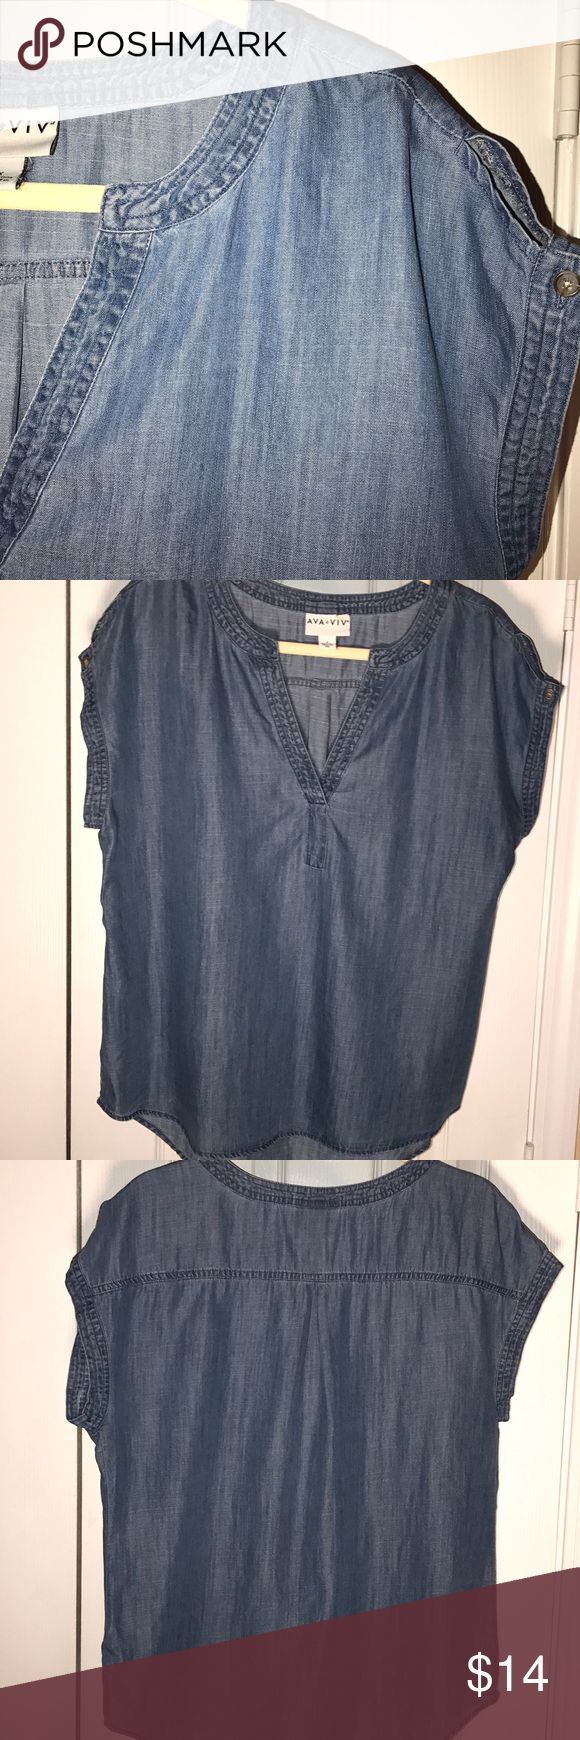 WOMEN'S LIGHT DENIM SHORT SLEEVE TOP NWOT AVA•VIV WOMEN'S SHORT SLEEVE, LIGHT WEIGHT CHAMBRAY SHIRT. SUPER CUTE & A GREAT ADDITION TO YOUR SUMMER WARDROBE!  AVA VIV Tops Blouses